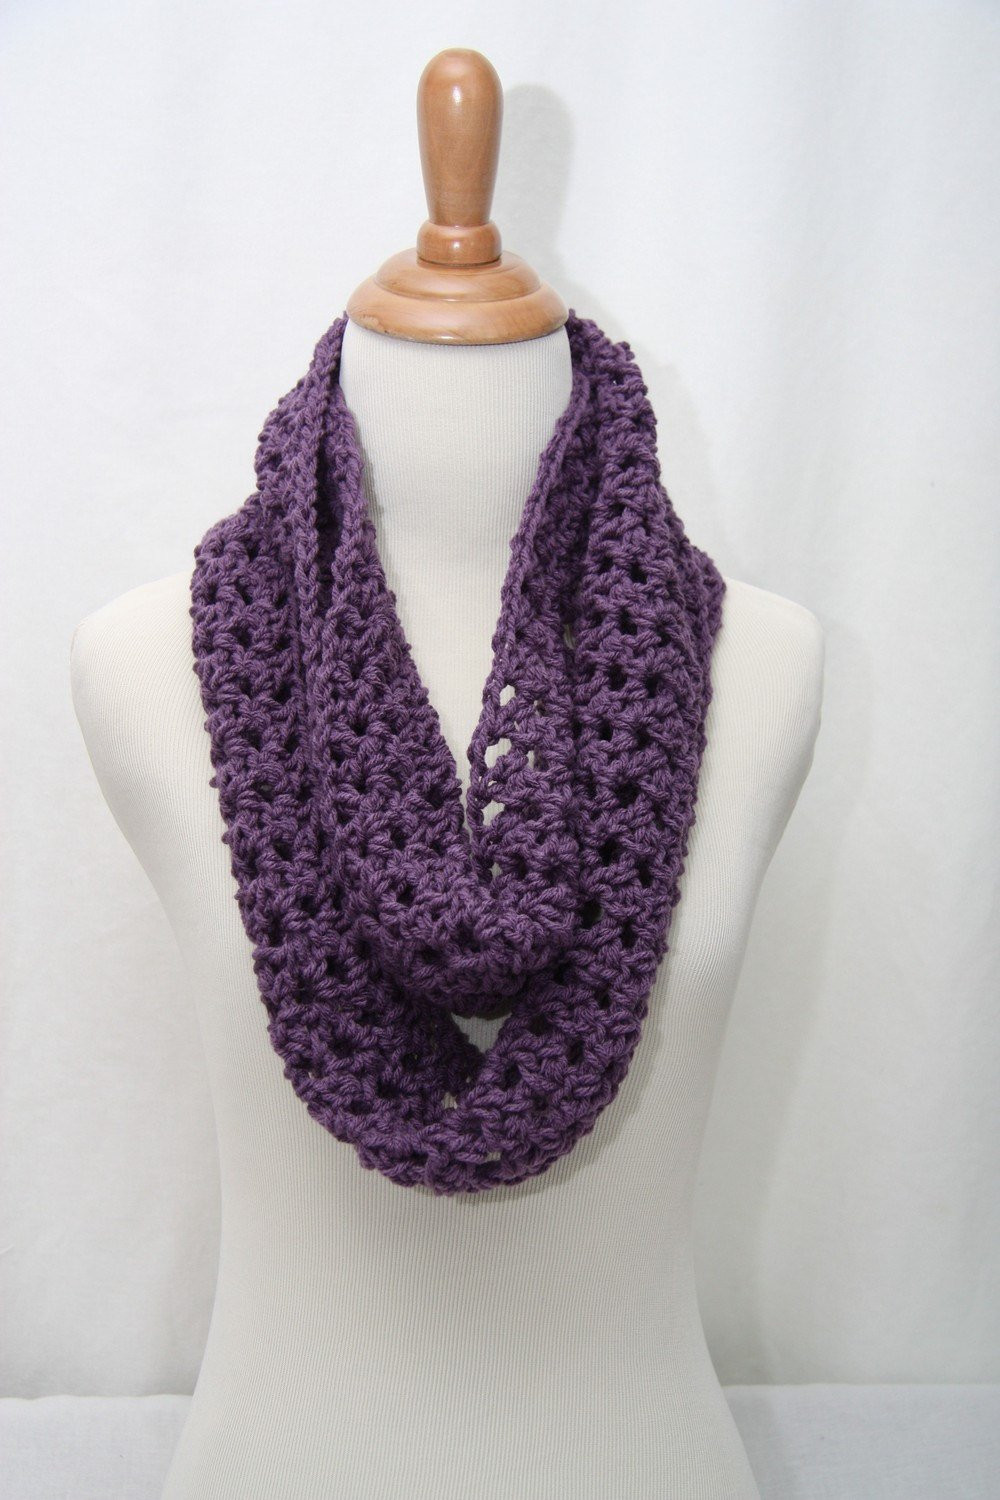 Crochet Cowl Scarf Lovely Crochet Cowl Neck Scarf Aqua Purple and Black by Shiara Of Awesome 42 Pics Crochet Cowl Scarf